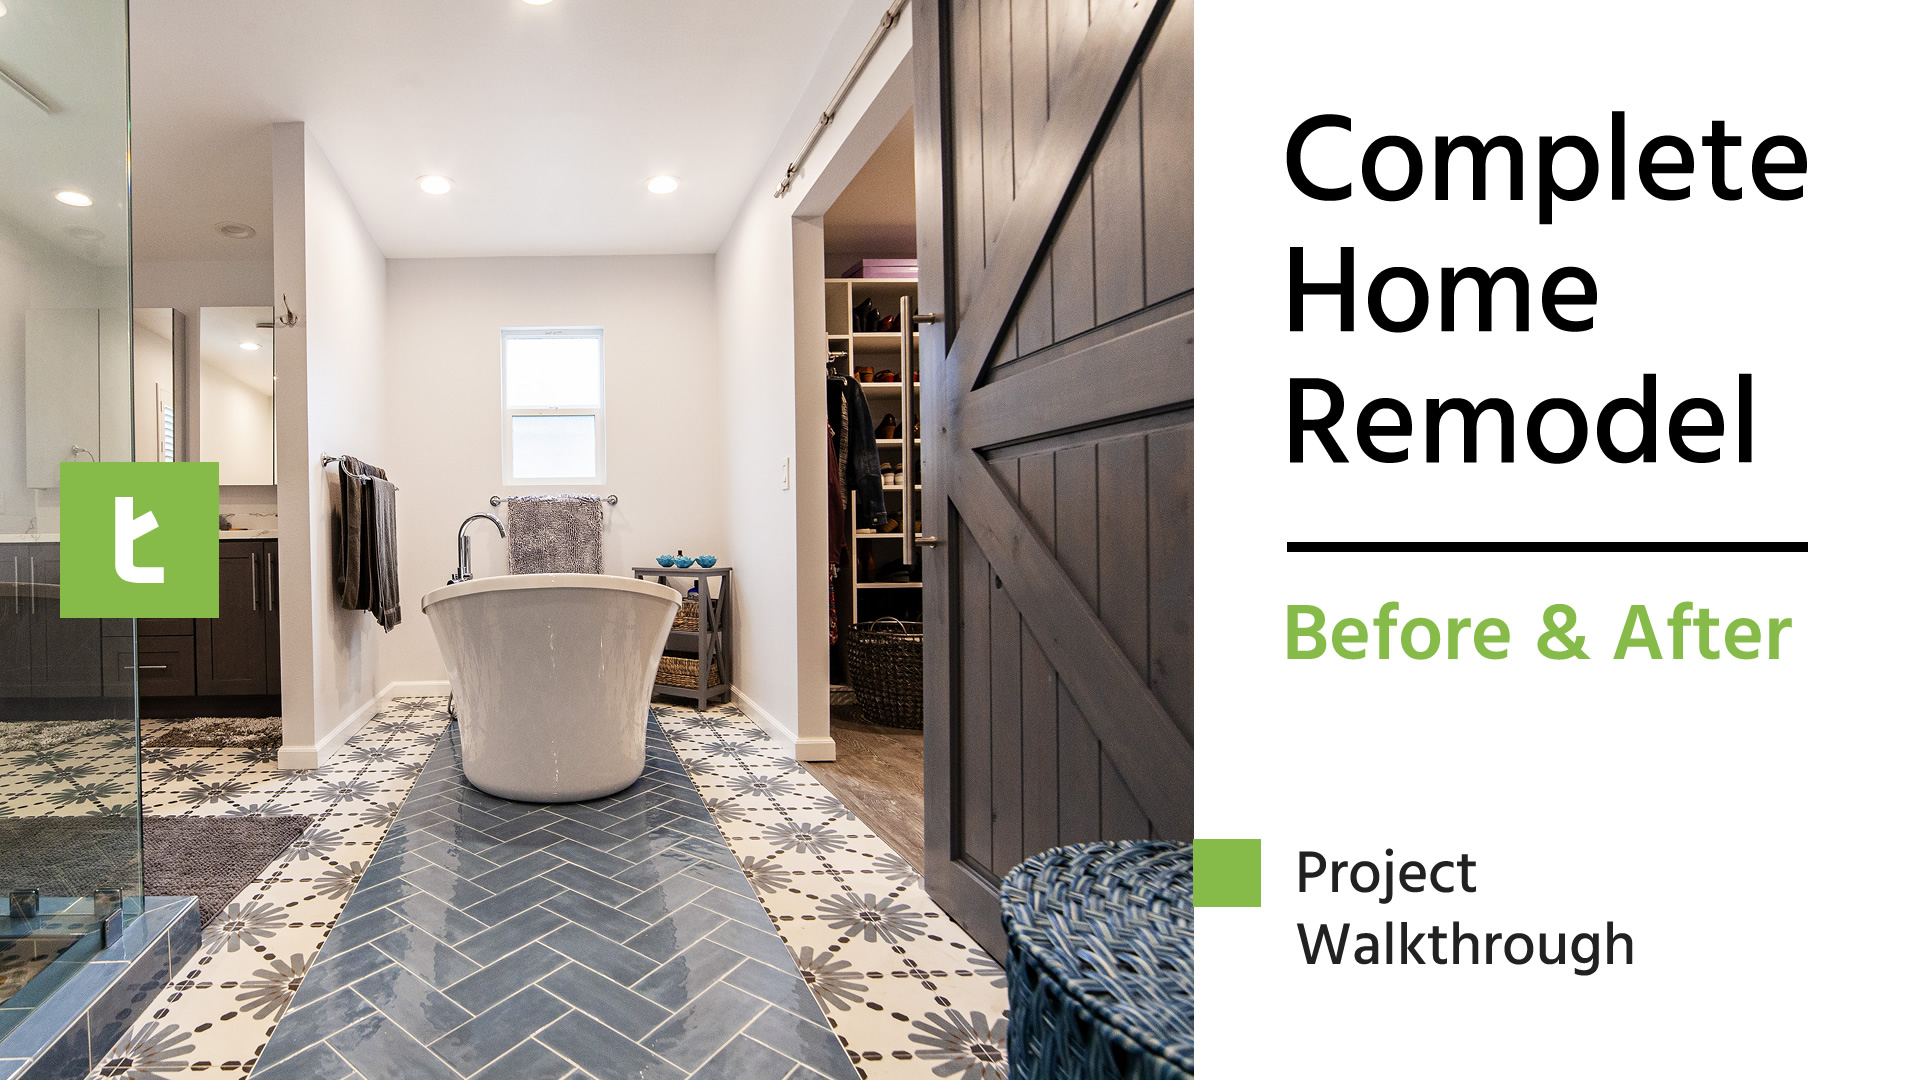 Complete Home Remodel | Before & After Transformation